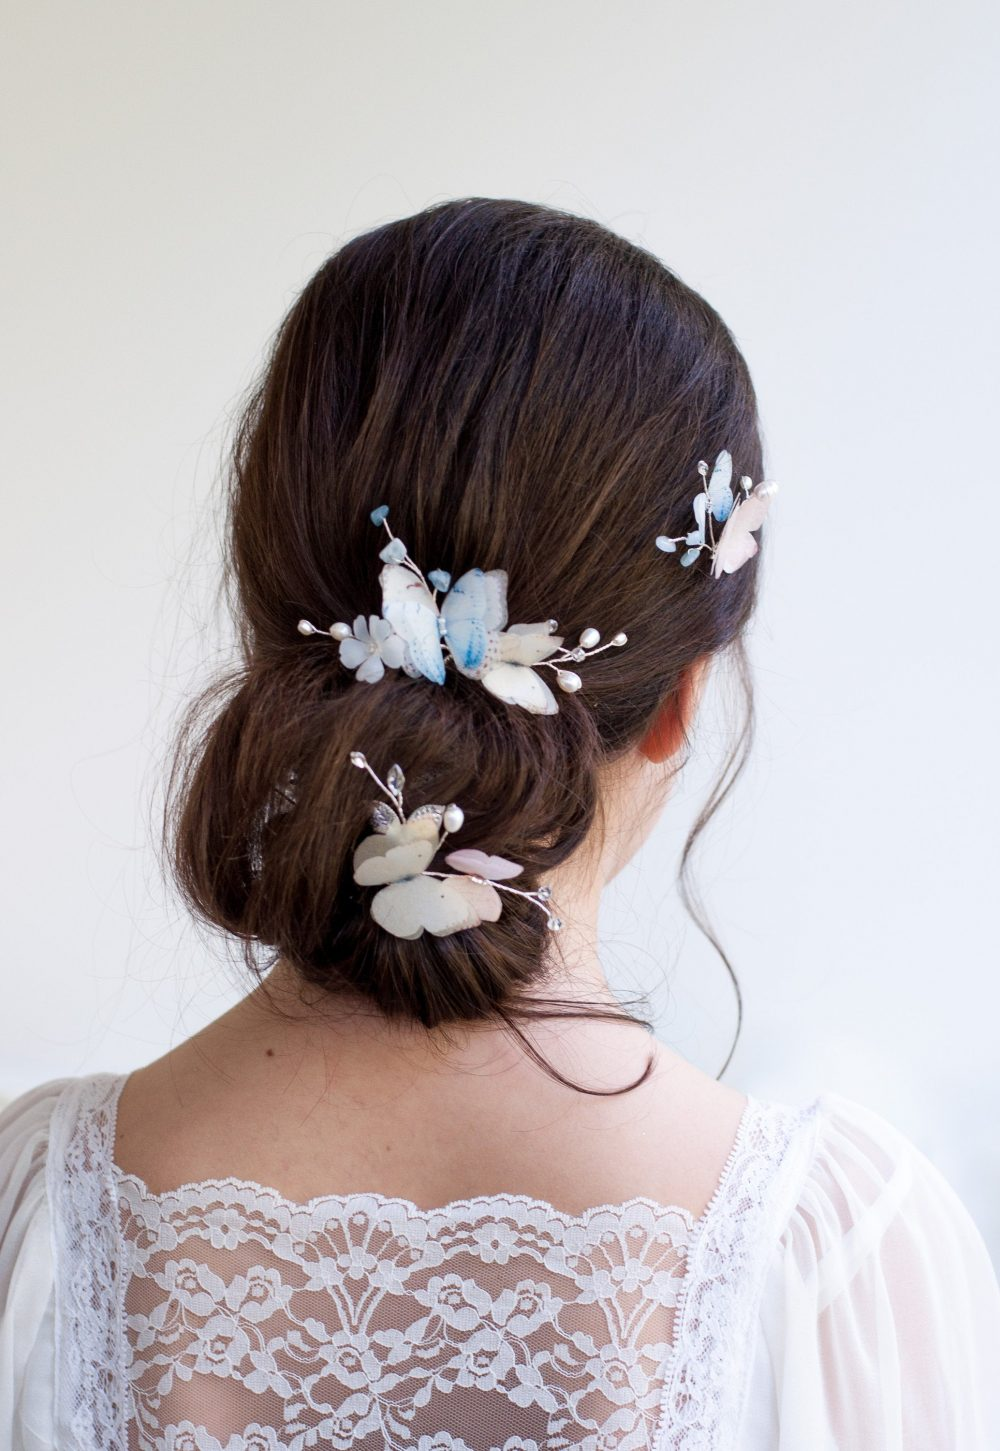 Wedding Hair Piece Blue Butterflies Headpiece Ivory Hair Accessories Multi-Colored Comb Flower Back Bridal Vine Pearl